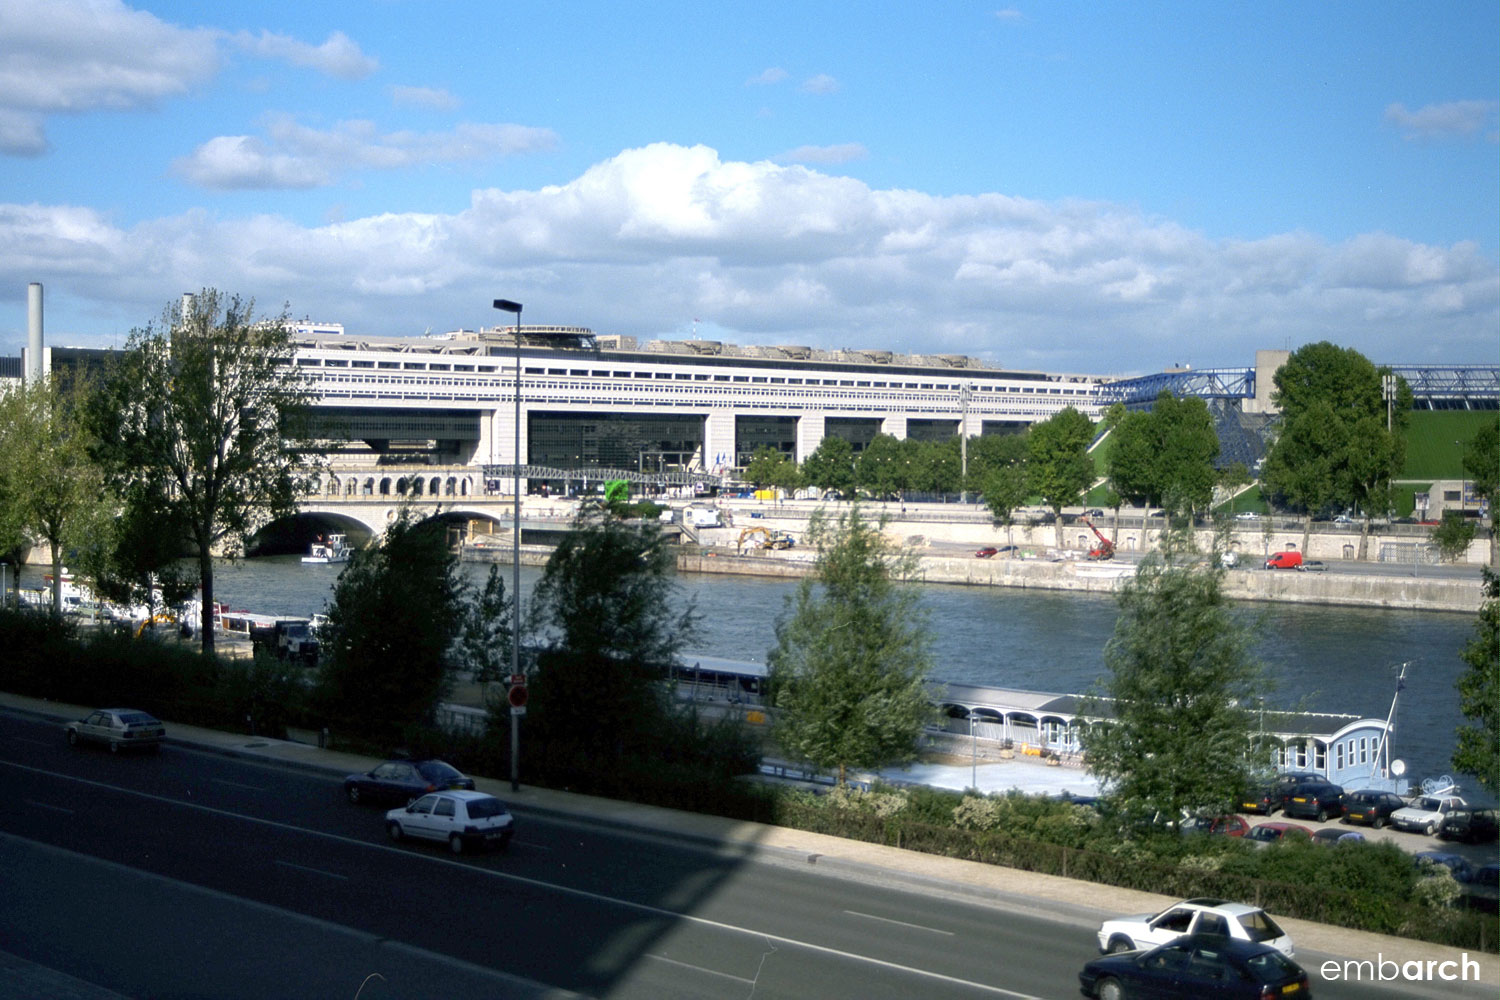 Ministry of Finance - view of exterior from across the River Seine.